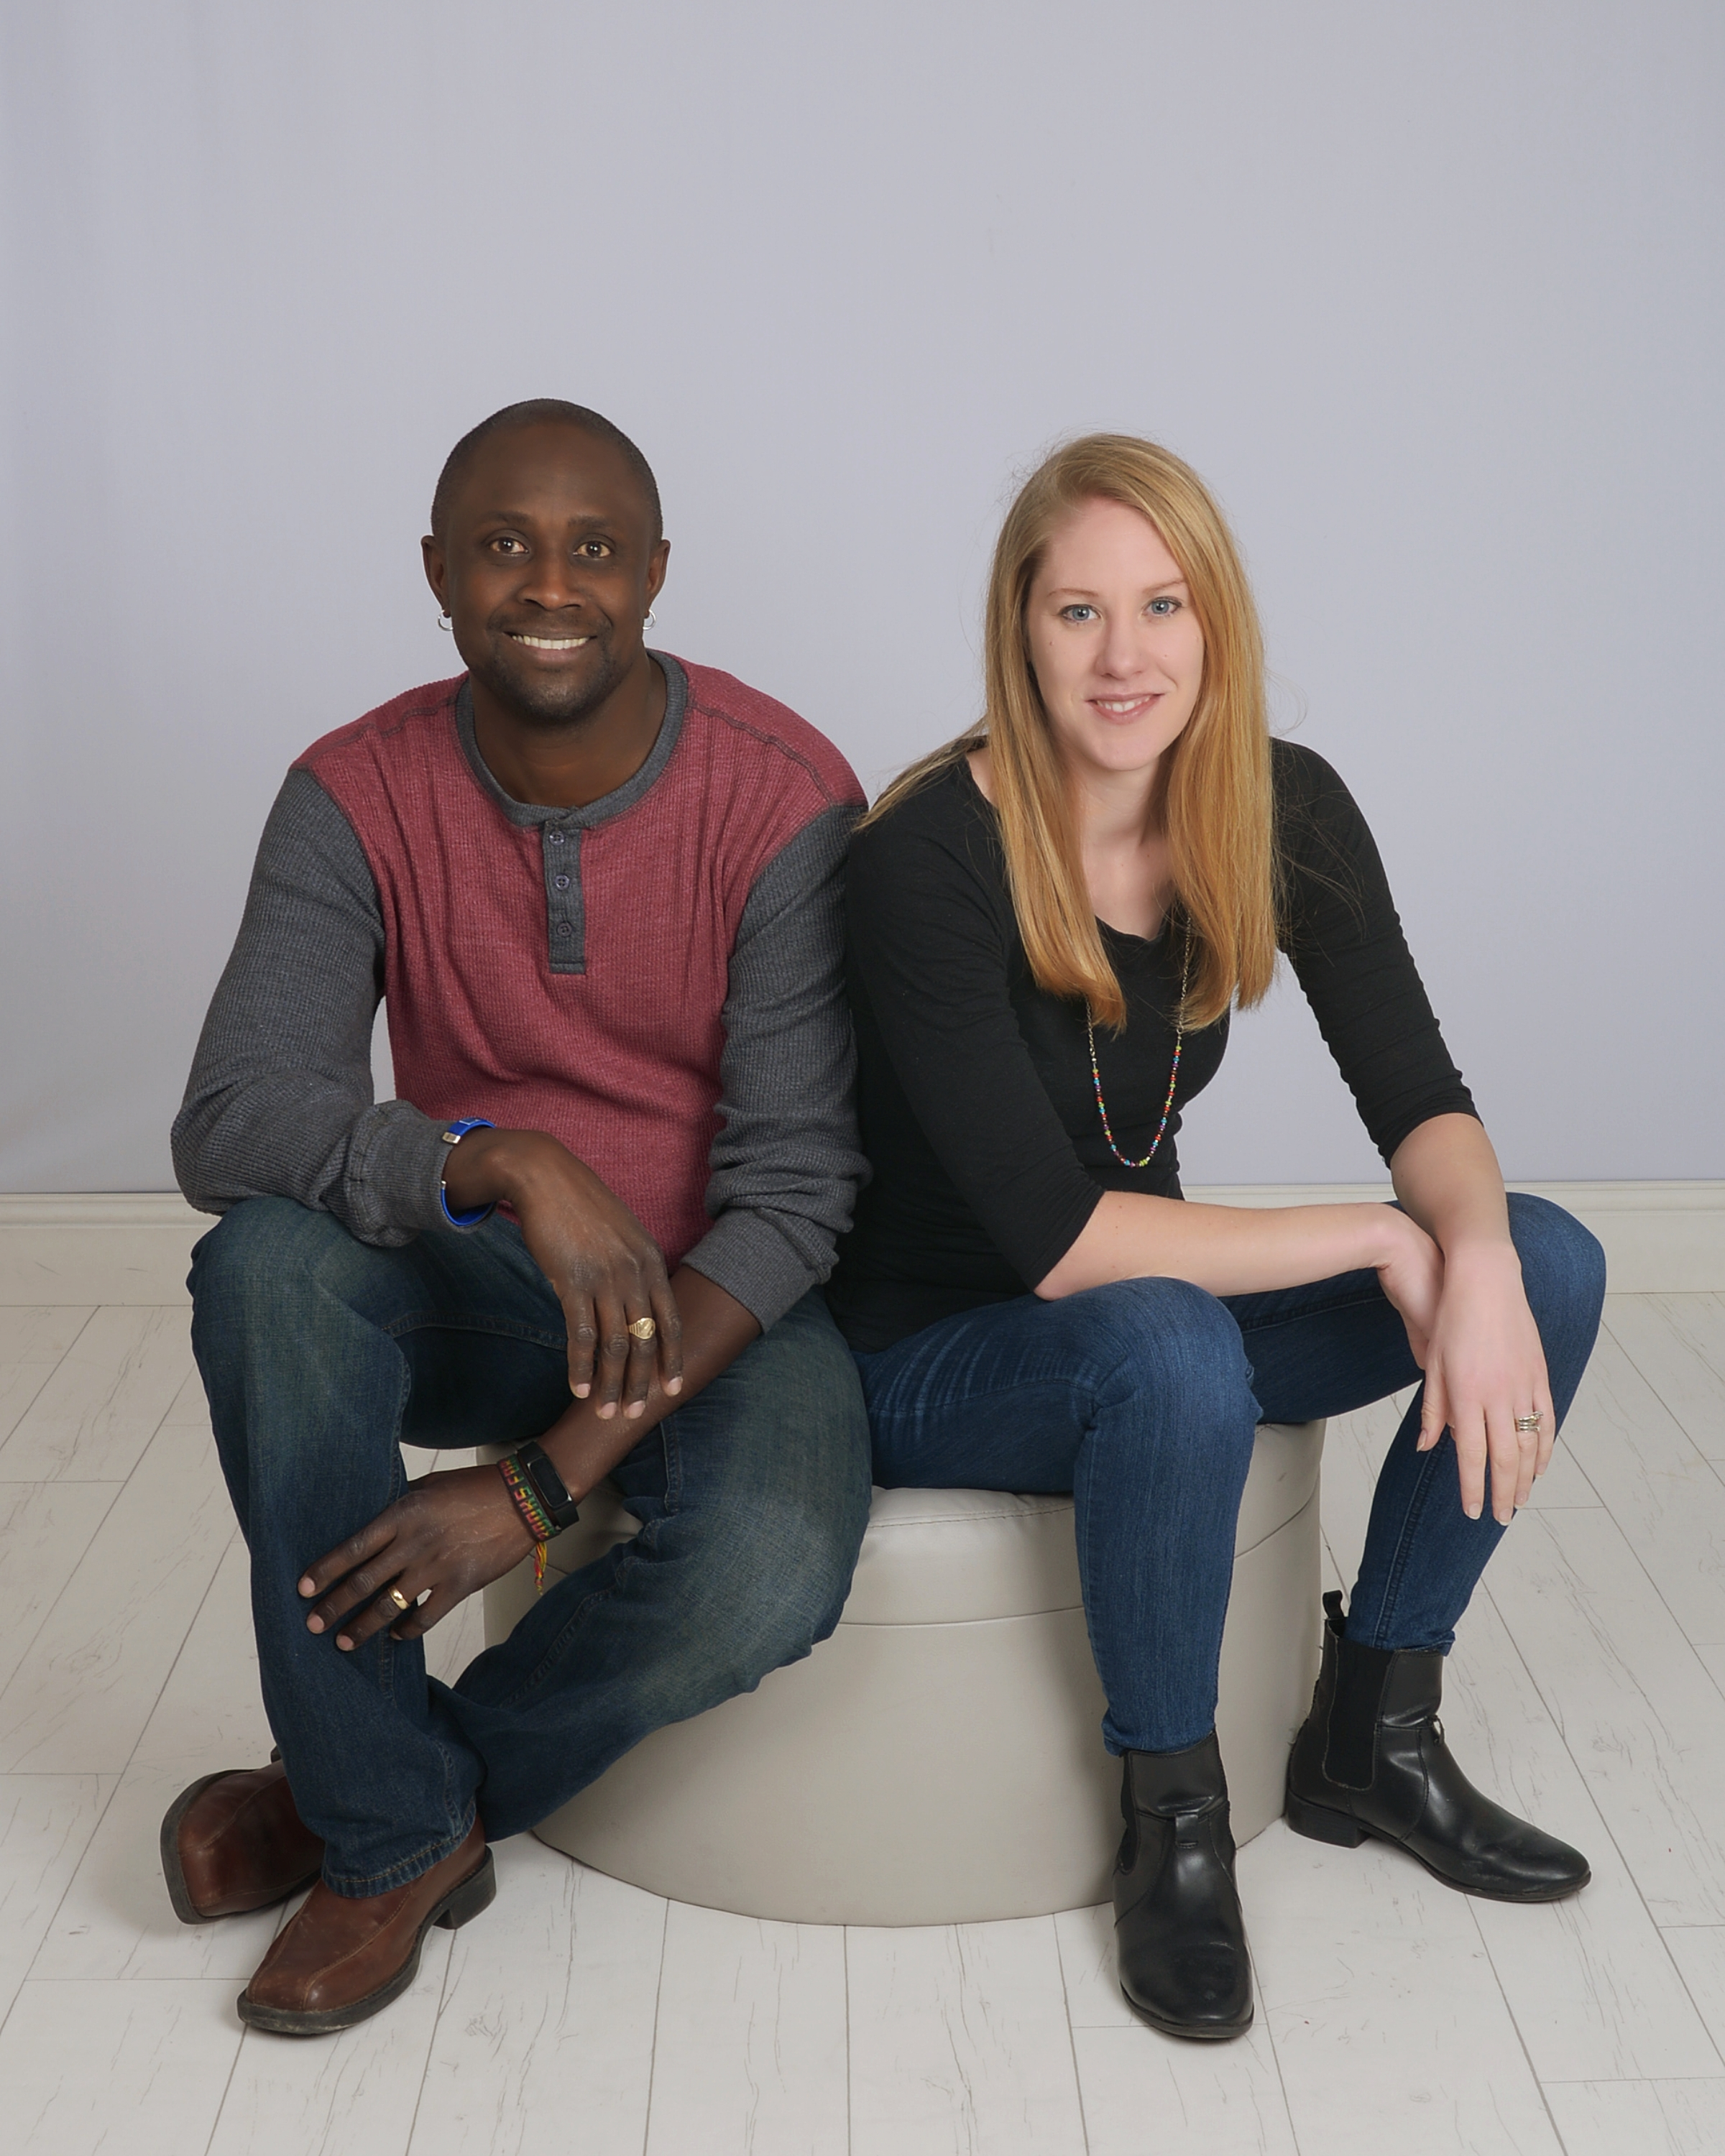 Baptiste Paul, a dark-skinned man wearing a gray and maroon shirt, and Miranda Paul, a light-skinned woman with long blonde hair, sit together and smile.